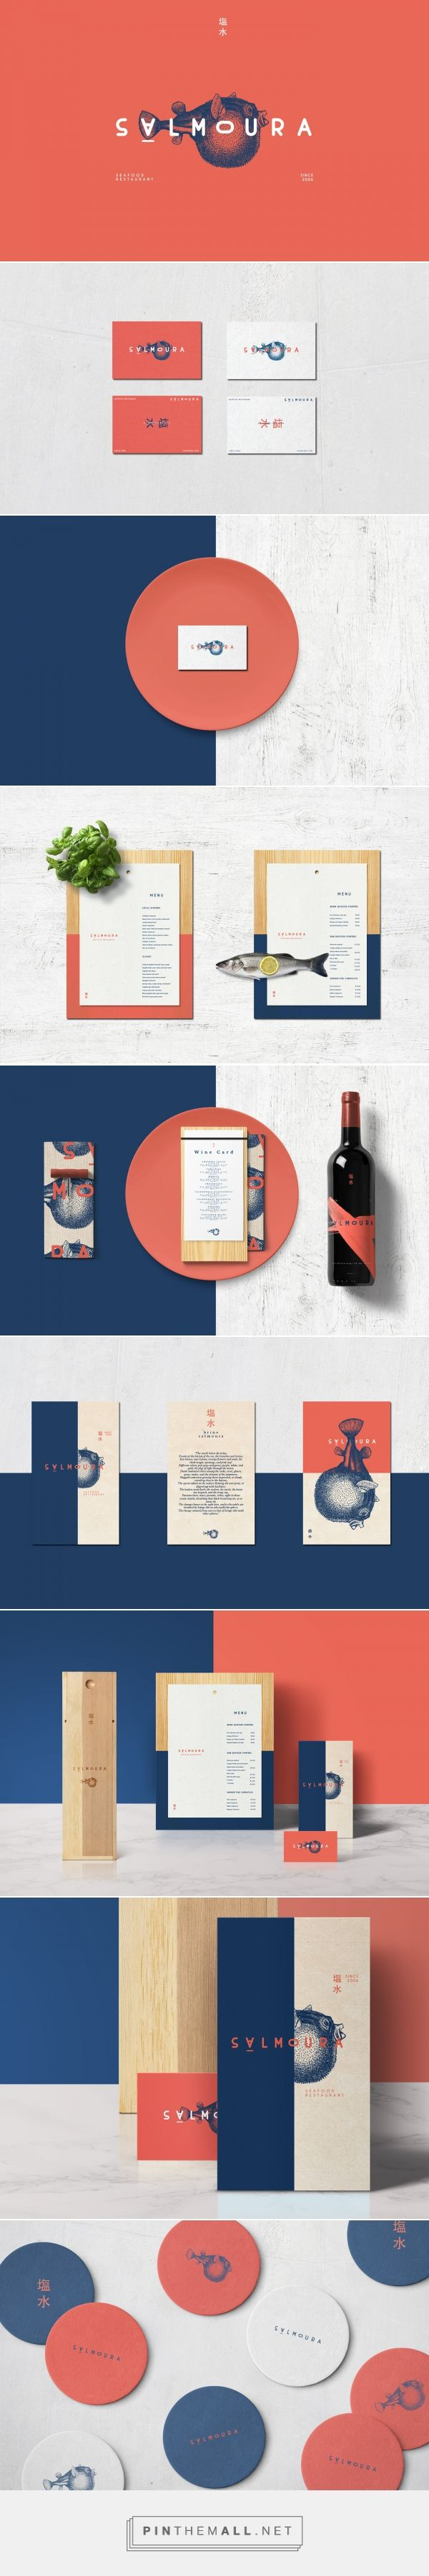 Salmoura Seafood Restaurant Branding and Menu Design by Manoela Silva | Fivestar Branding Agency – Design and Branding Agency & Curated Inspiration Gallery